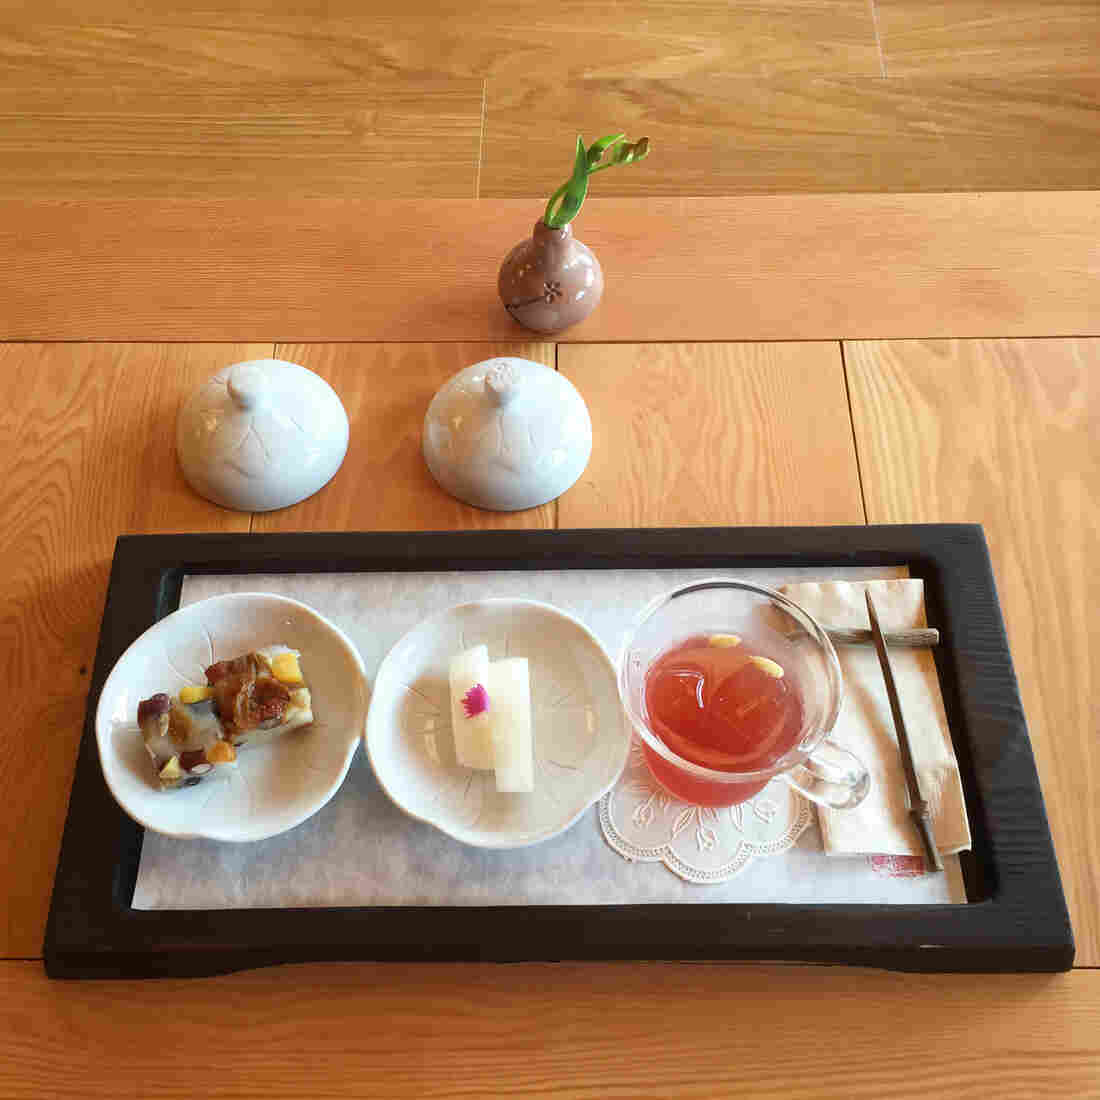 Iced tea made from local berries is served with melon and squares of sweet sticky rice topped with fruits and nuts. The nuns eat these sweets on head-shaving day, to replenish their energy.